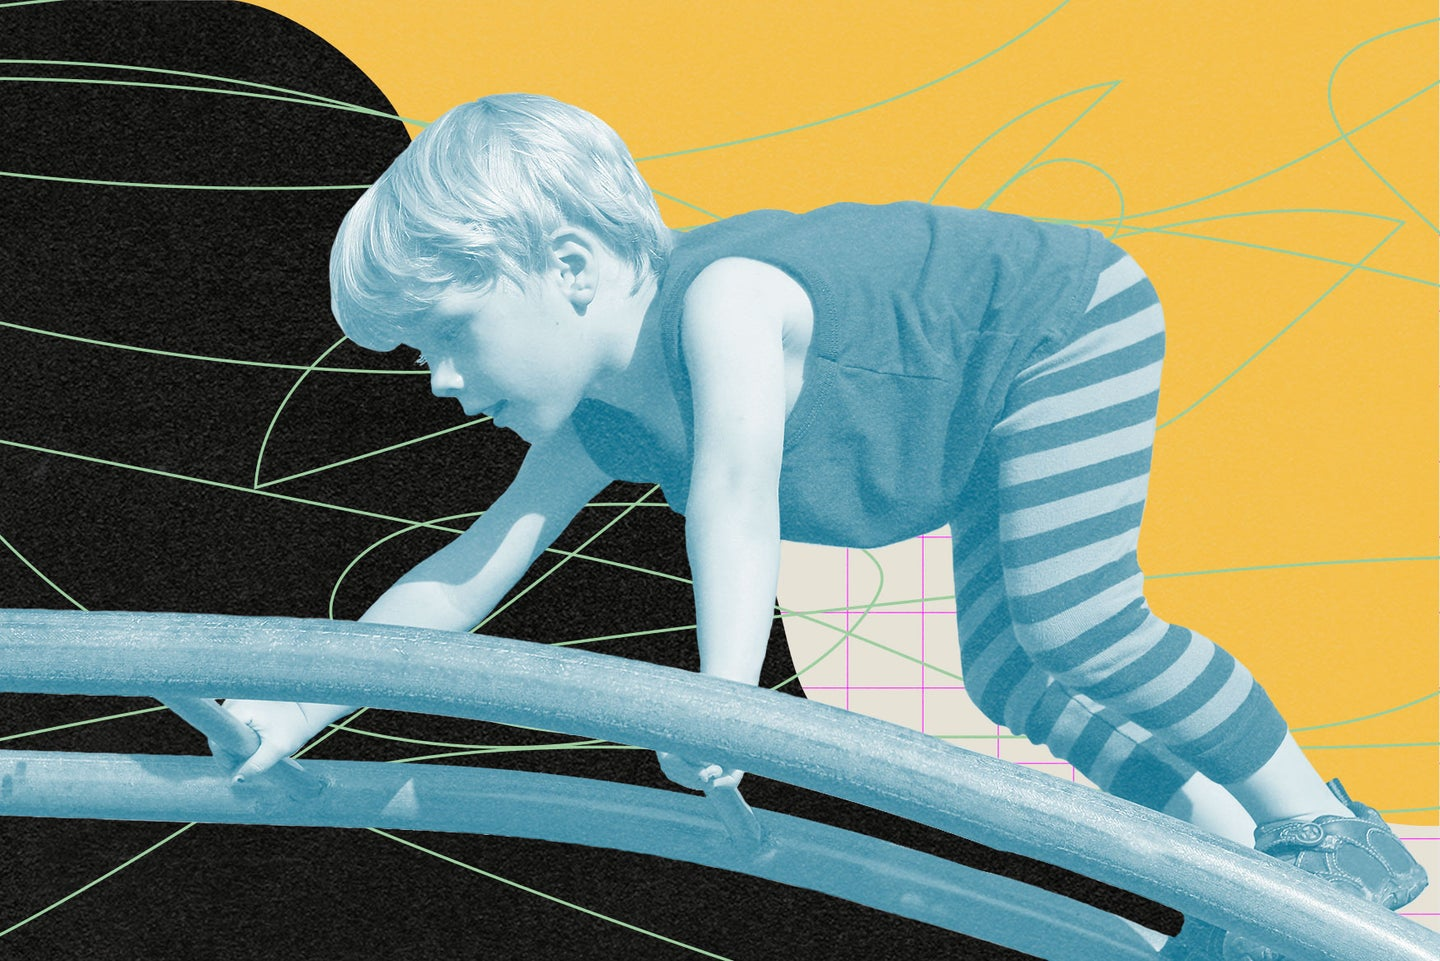 A child wearing a dark t-shirt and striped leggings climbs a playground structure. The child and structure are greyscale against a yellow, beige, black, pink, and green abstract background.